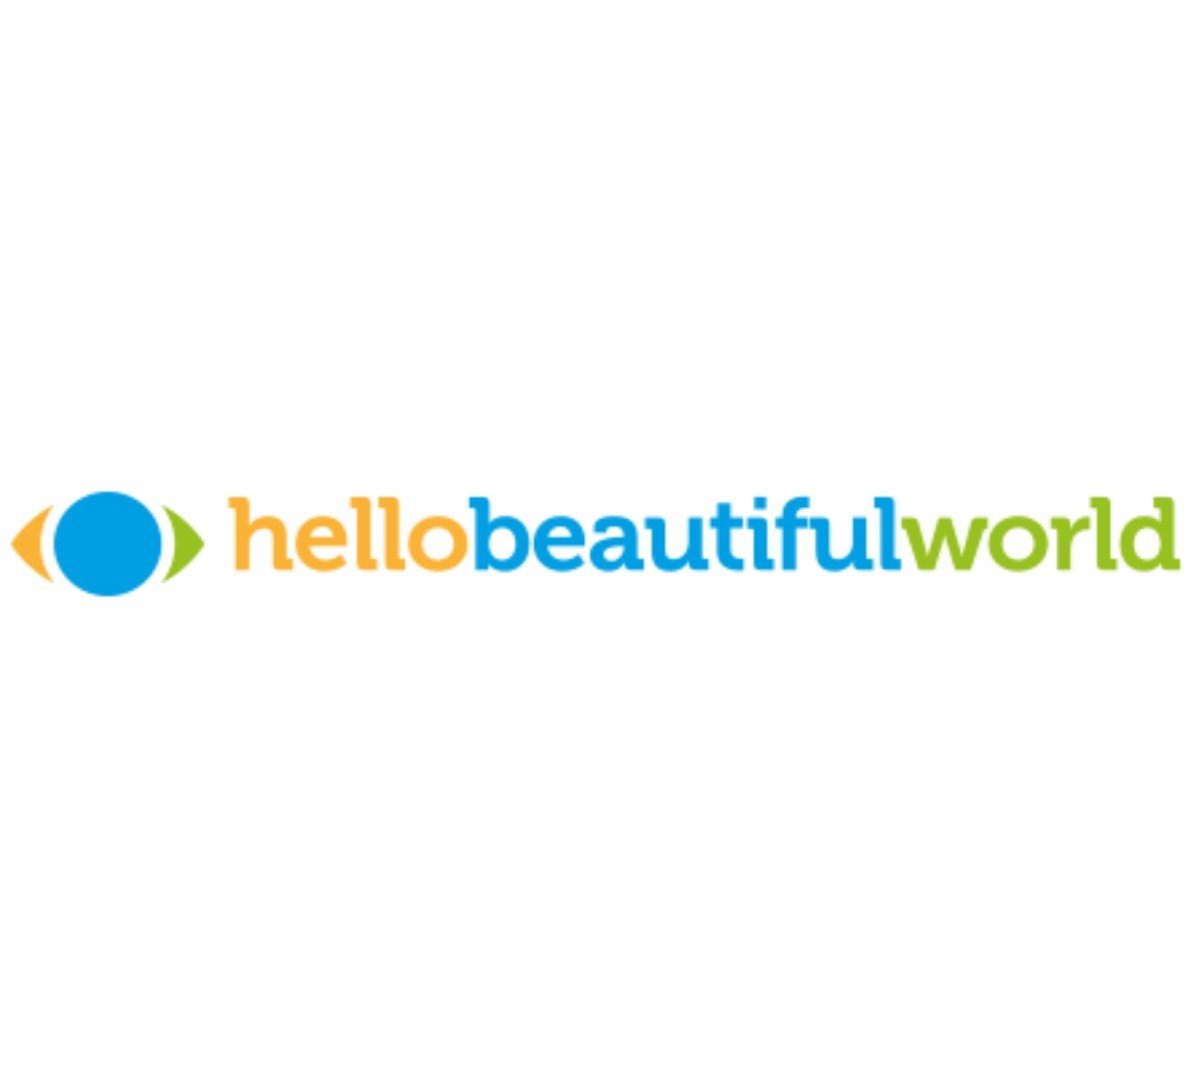 Hello Beautiful World